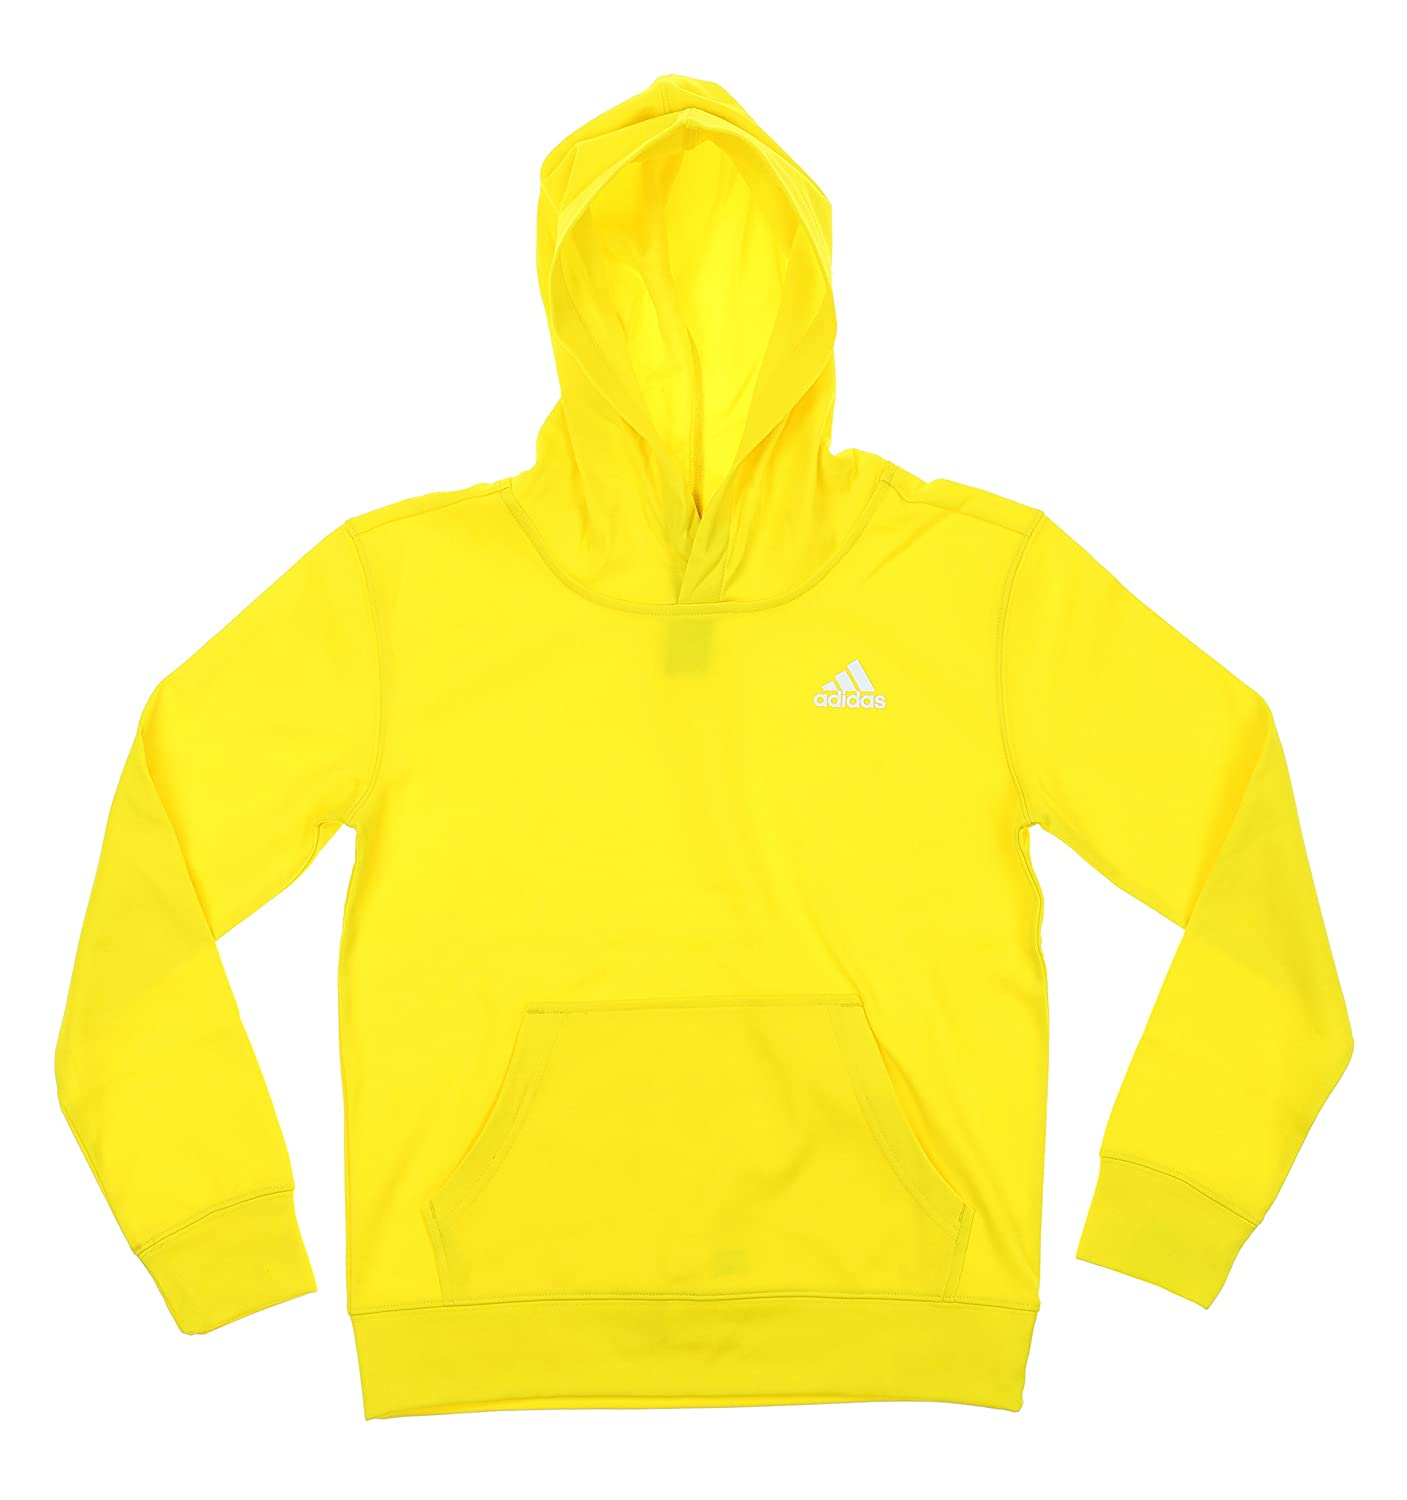 adidas Big Boys Youth Light Weight Performance Hoodie